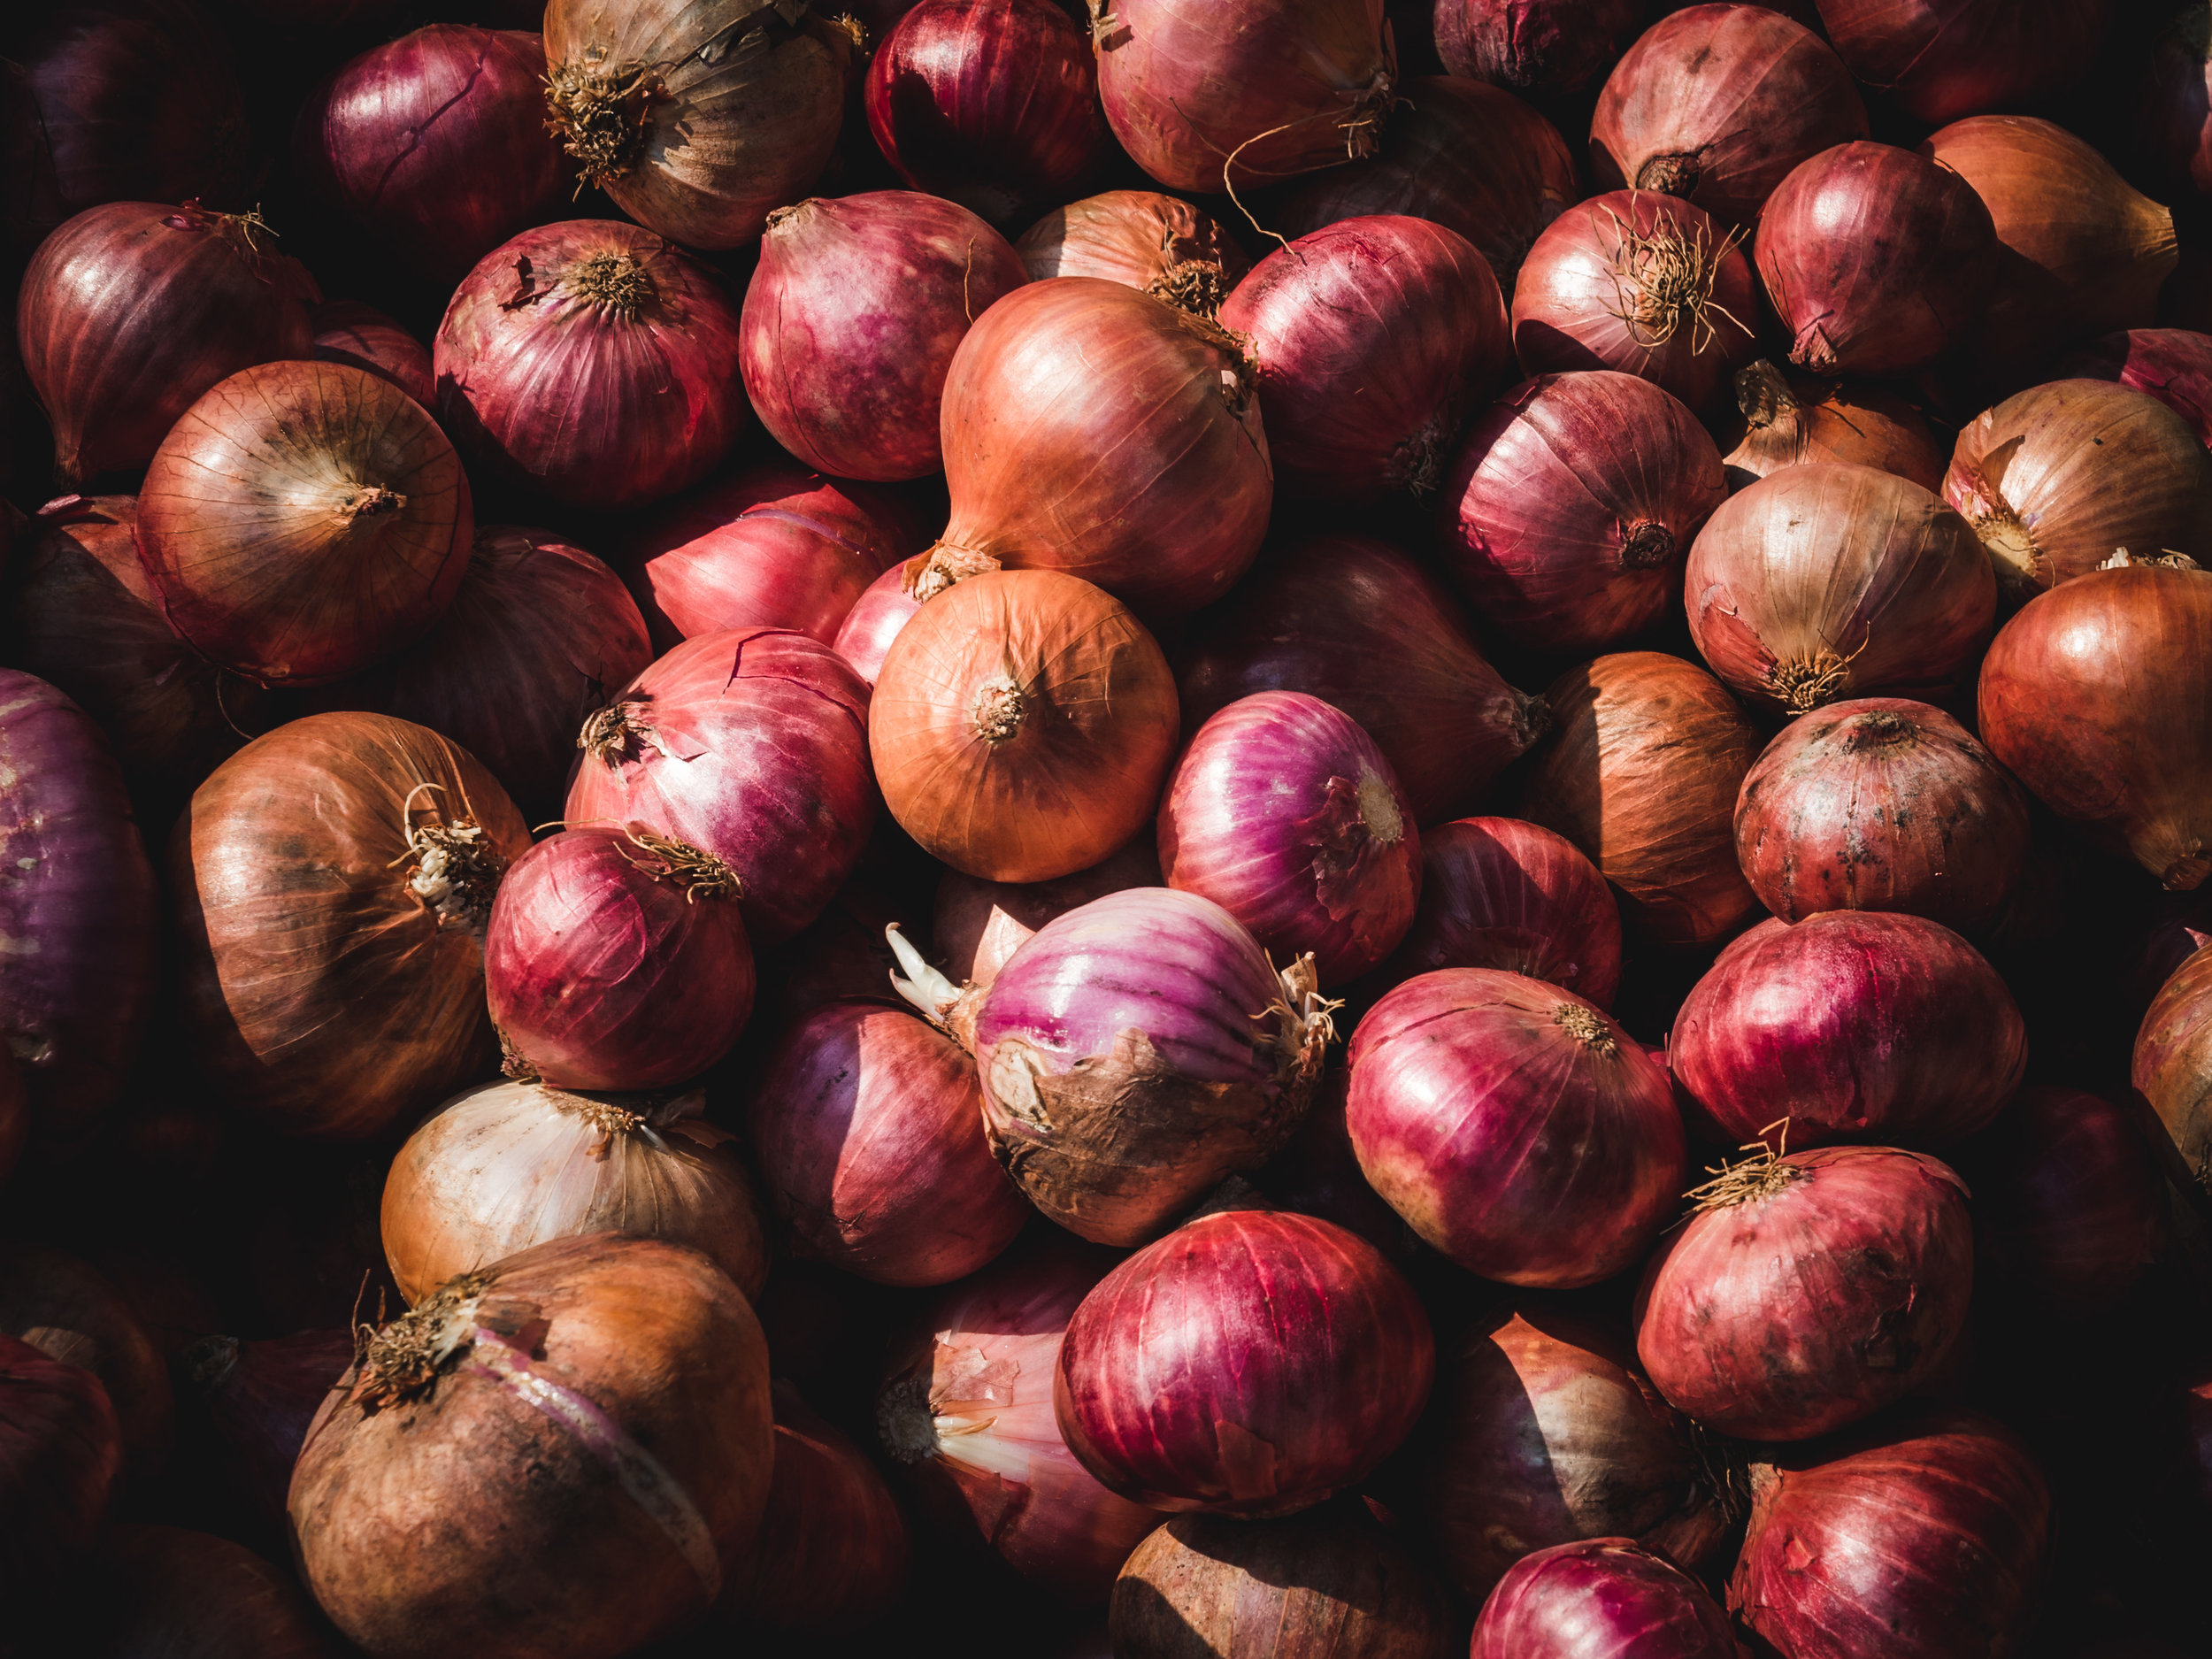 Onions - Onion is extremely rich in Vitamin C as well as high in Vitamin B and potassium. Vitamin C helps with immunity, iron absorption, collagen production, and tissue repair.